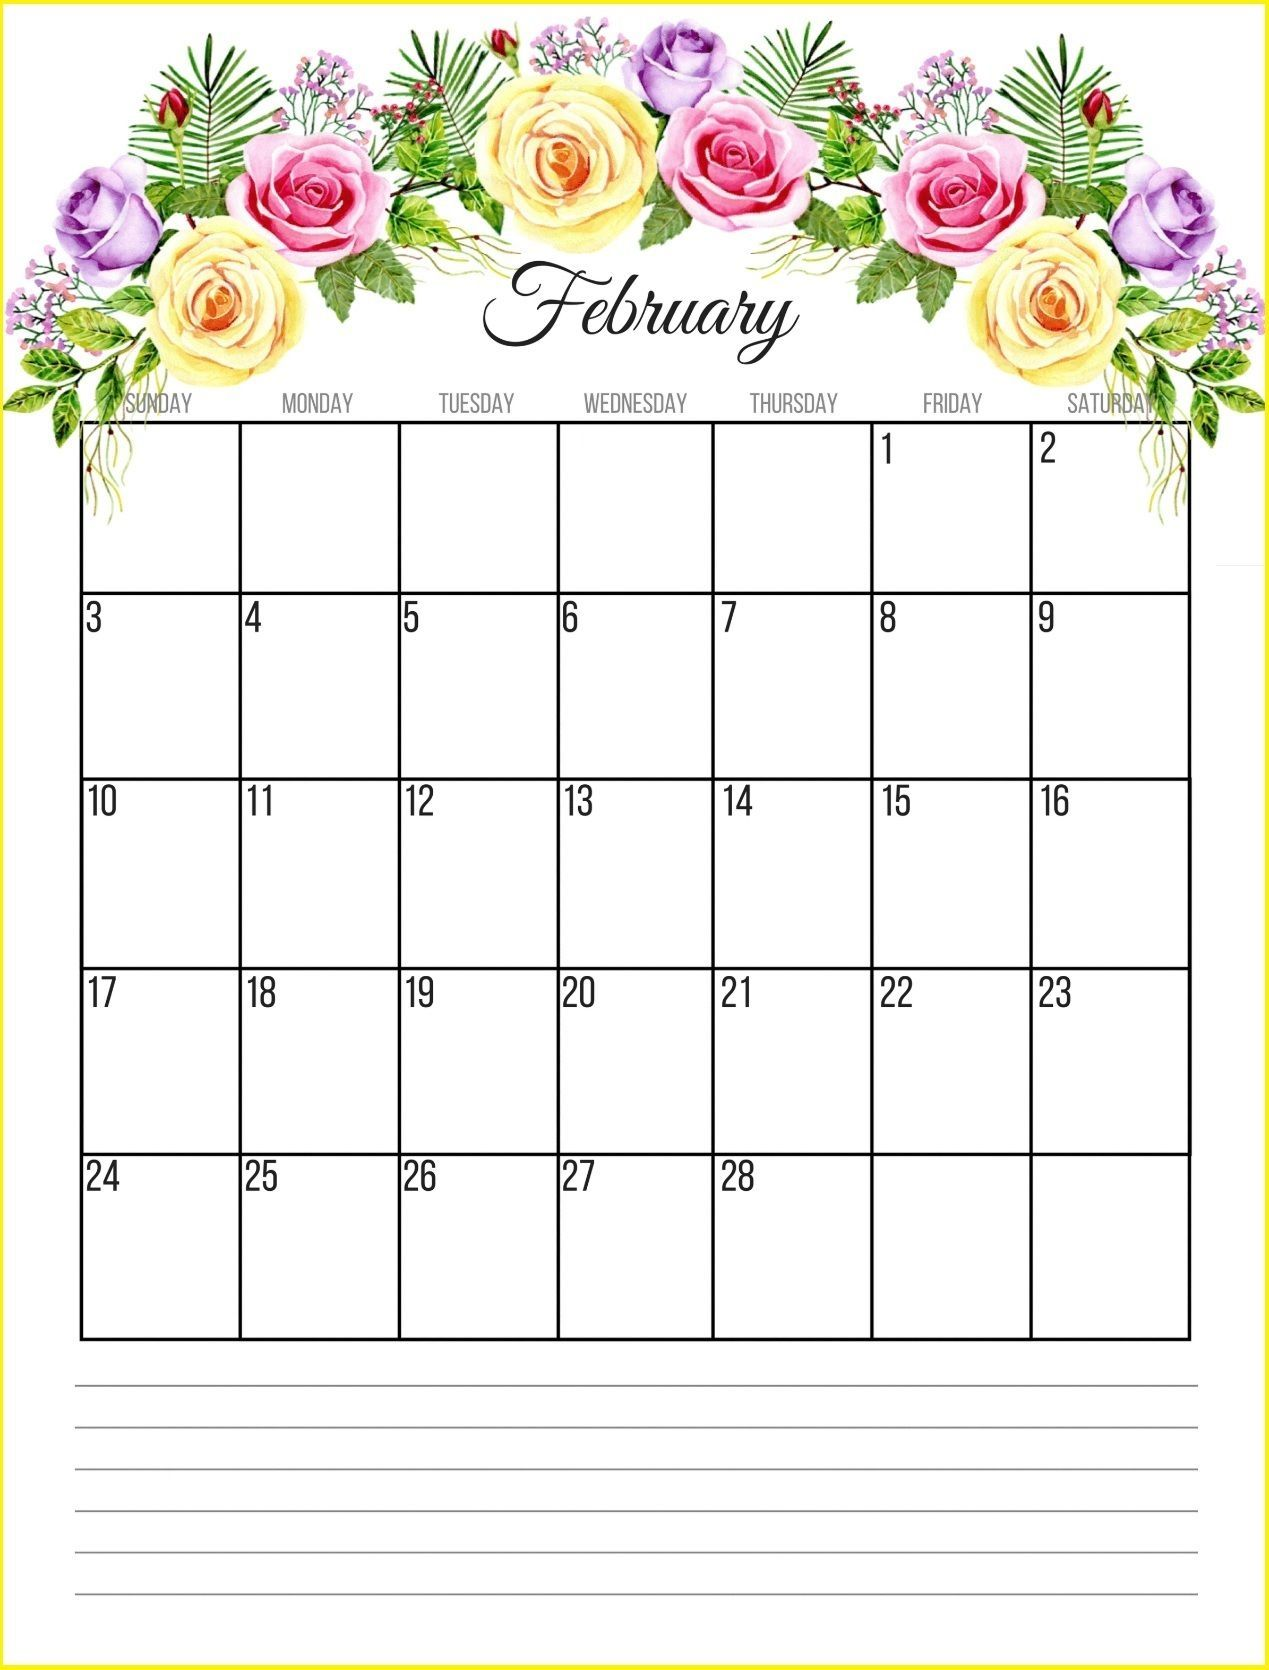 Floral February 2019 Calendar Monthly Templates Free Download